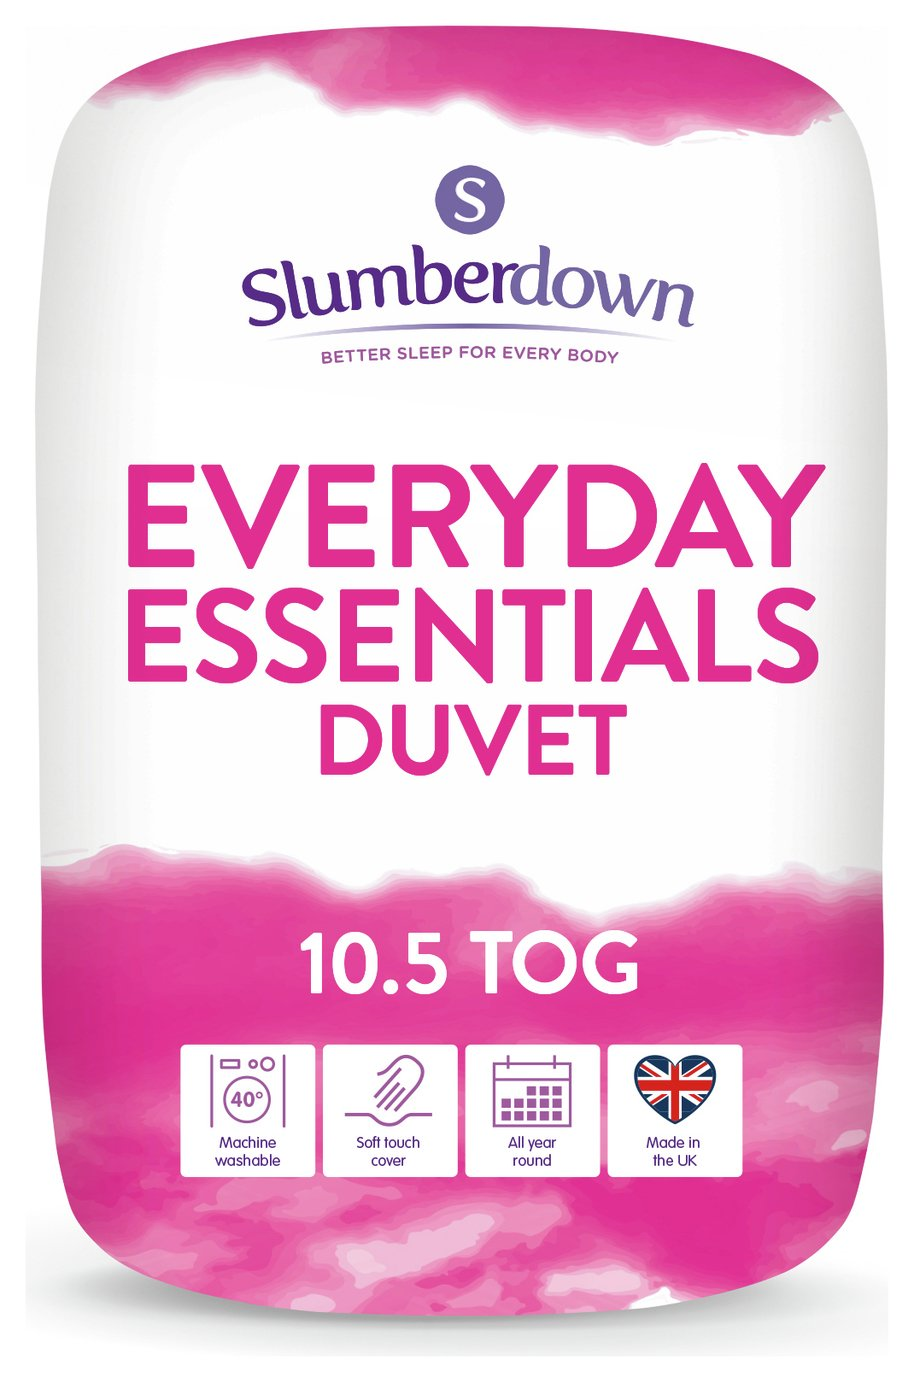 Slumberdown Everyday Essentials 10.5 Tog Duvet - Kingsize